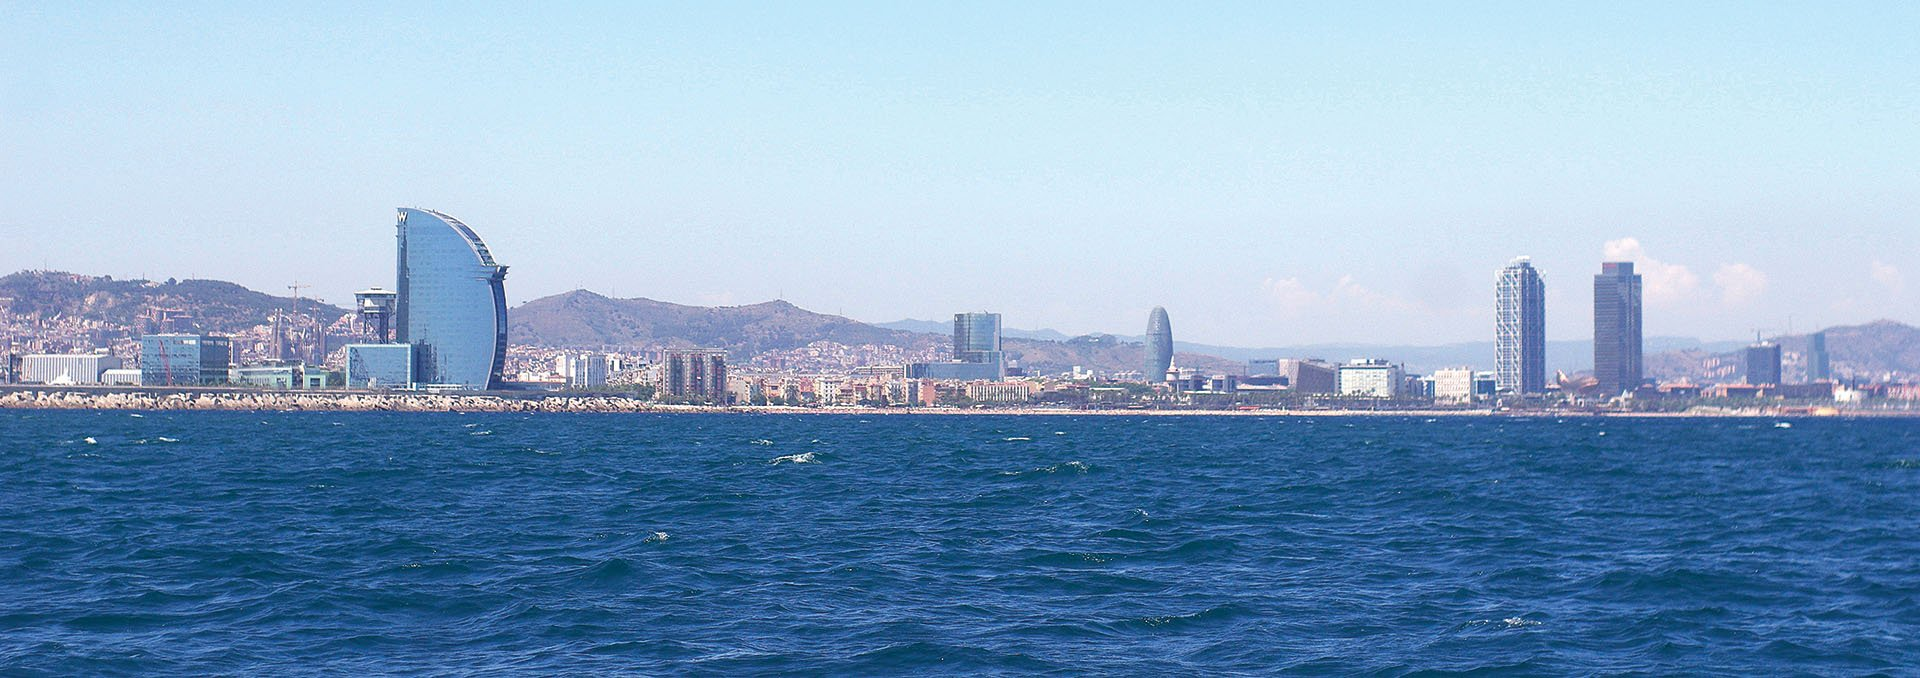 Watersports activities Barcelona